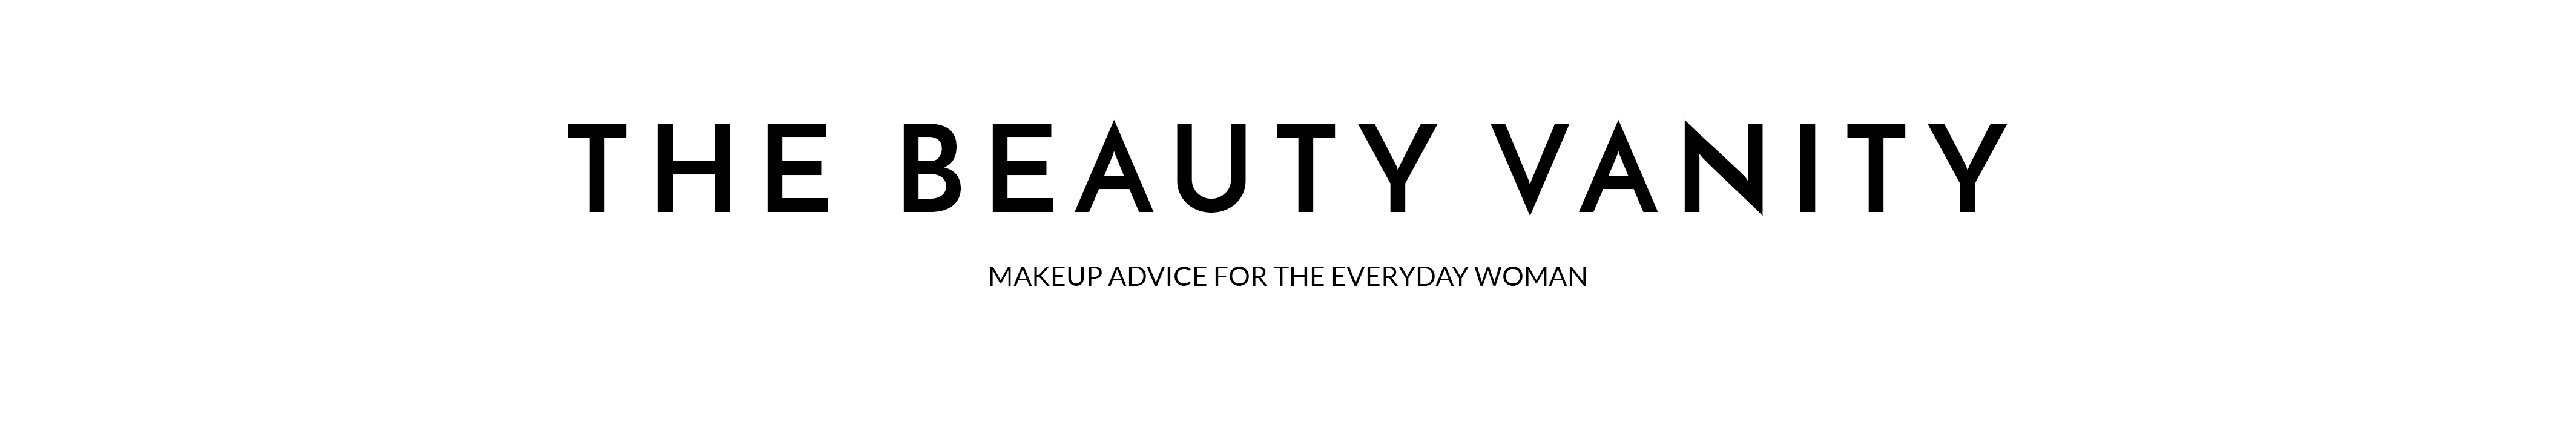 The Beauty Vanity